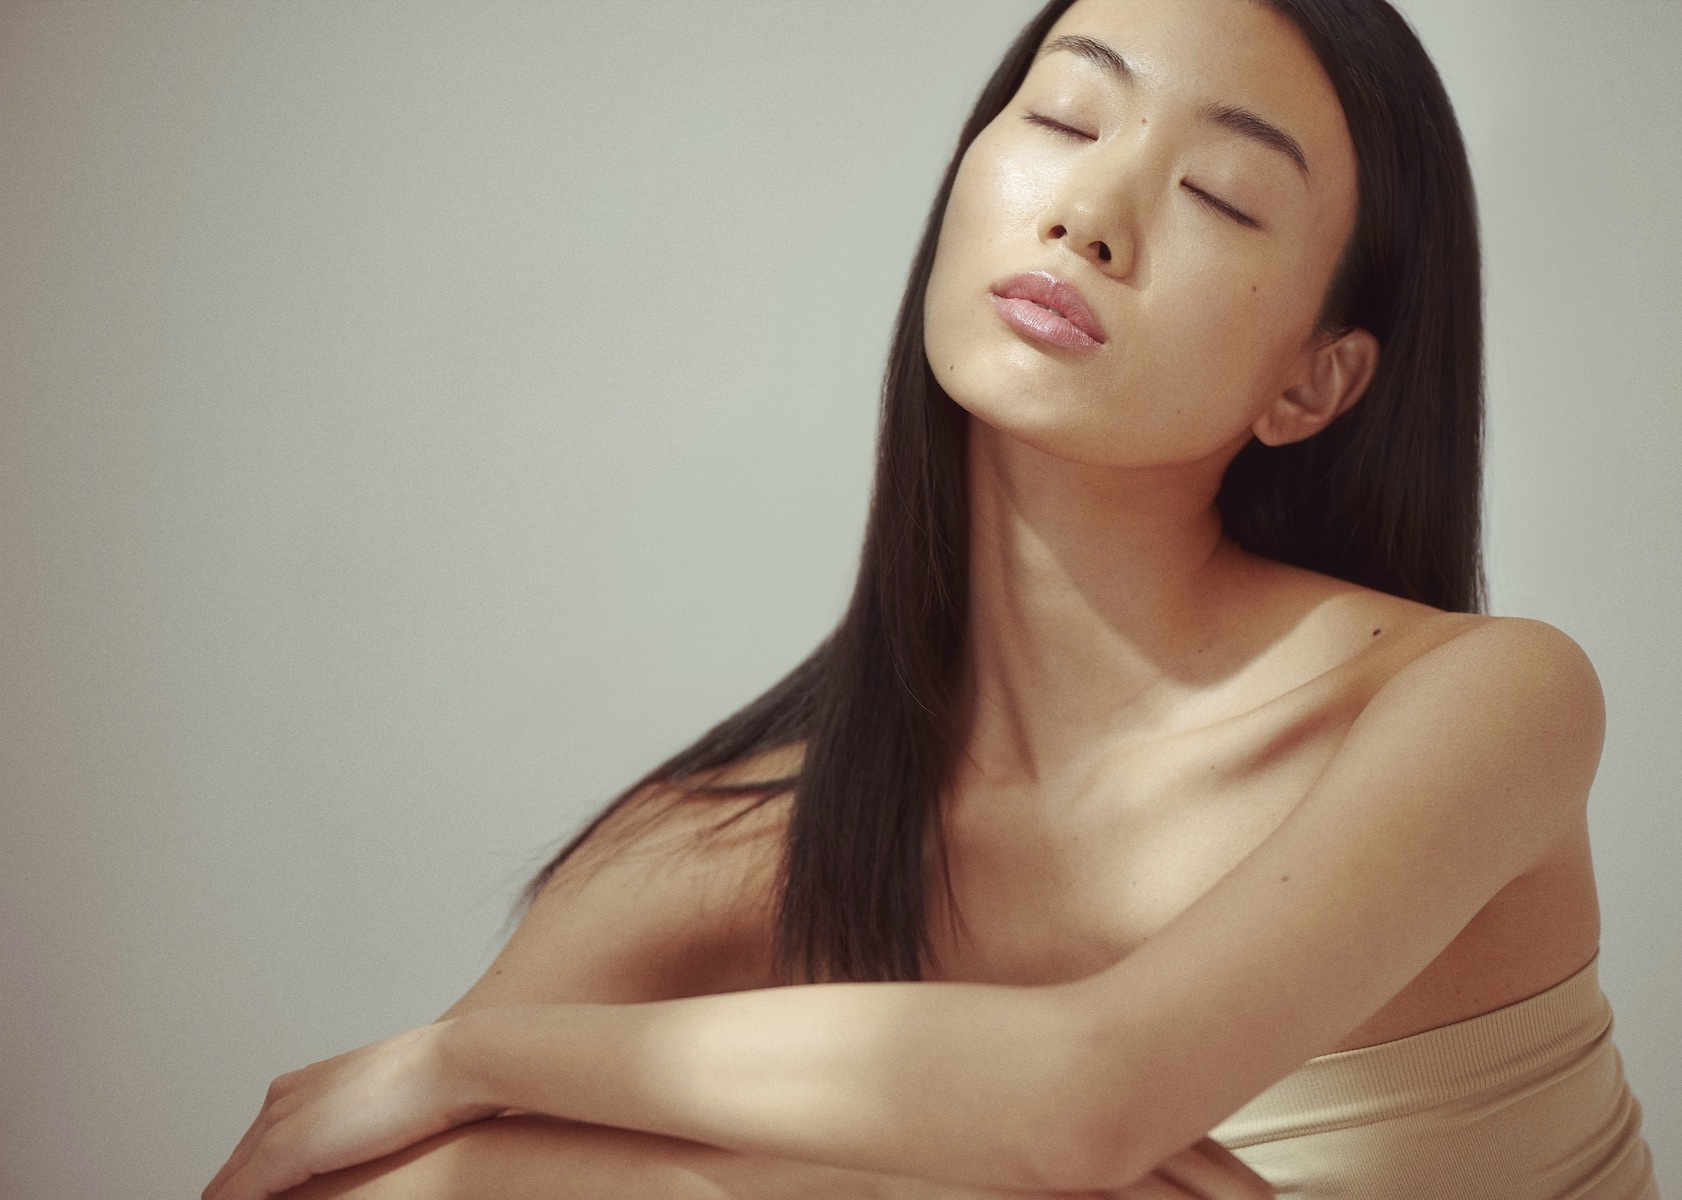 Asian woman relaxed with her eyes closed.